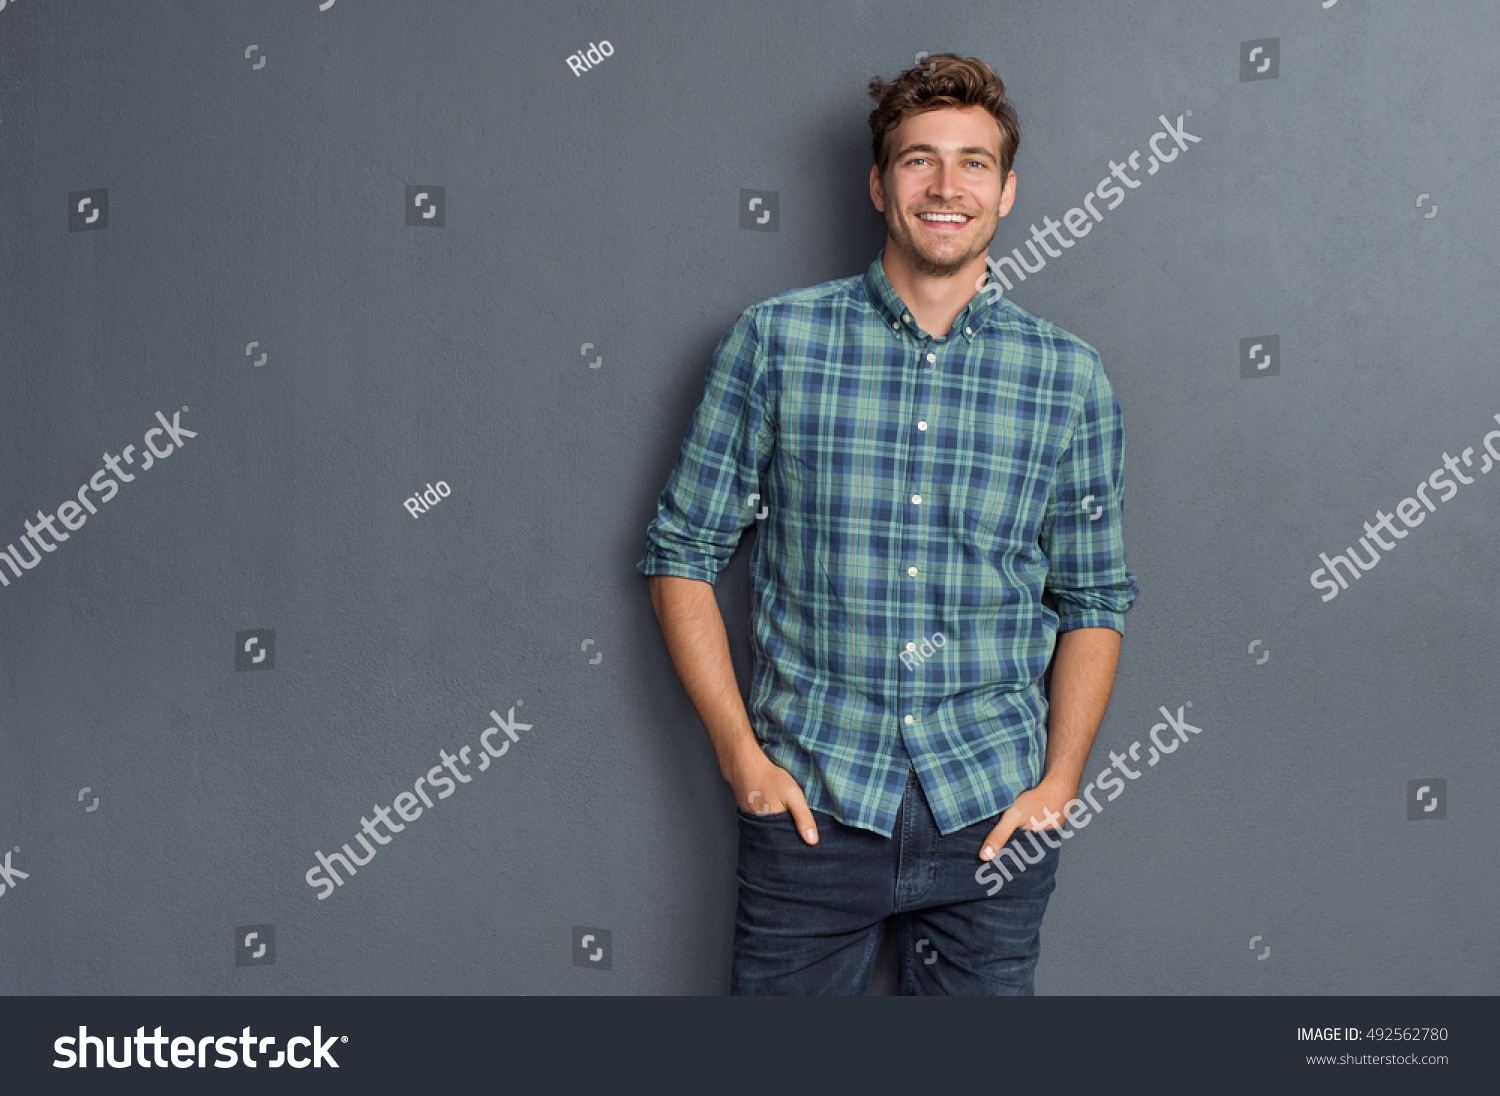 Handsome young man on grey background looking at camera. Portrait of laughing young man with hands in pockets leaning against grey wall. Happy guy smiling. #492562780